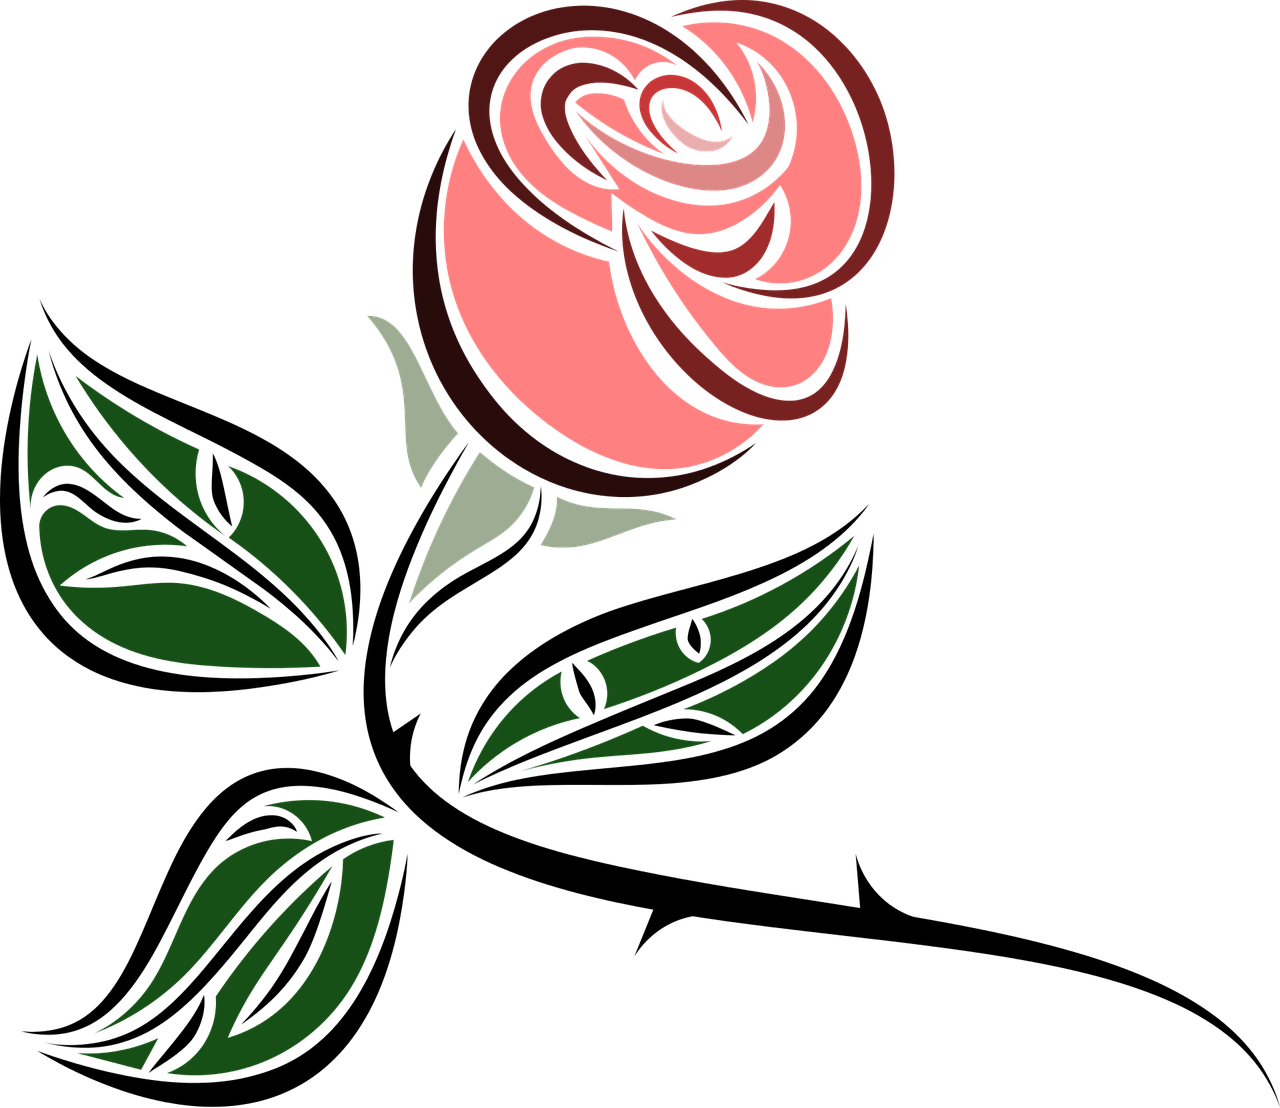 how to make a rose 10